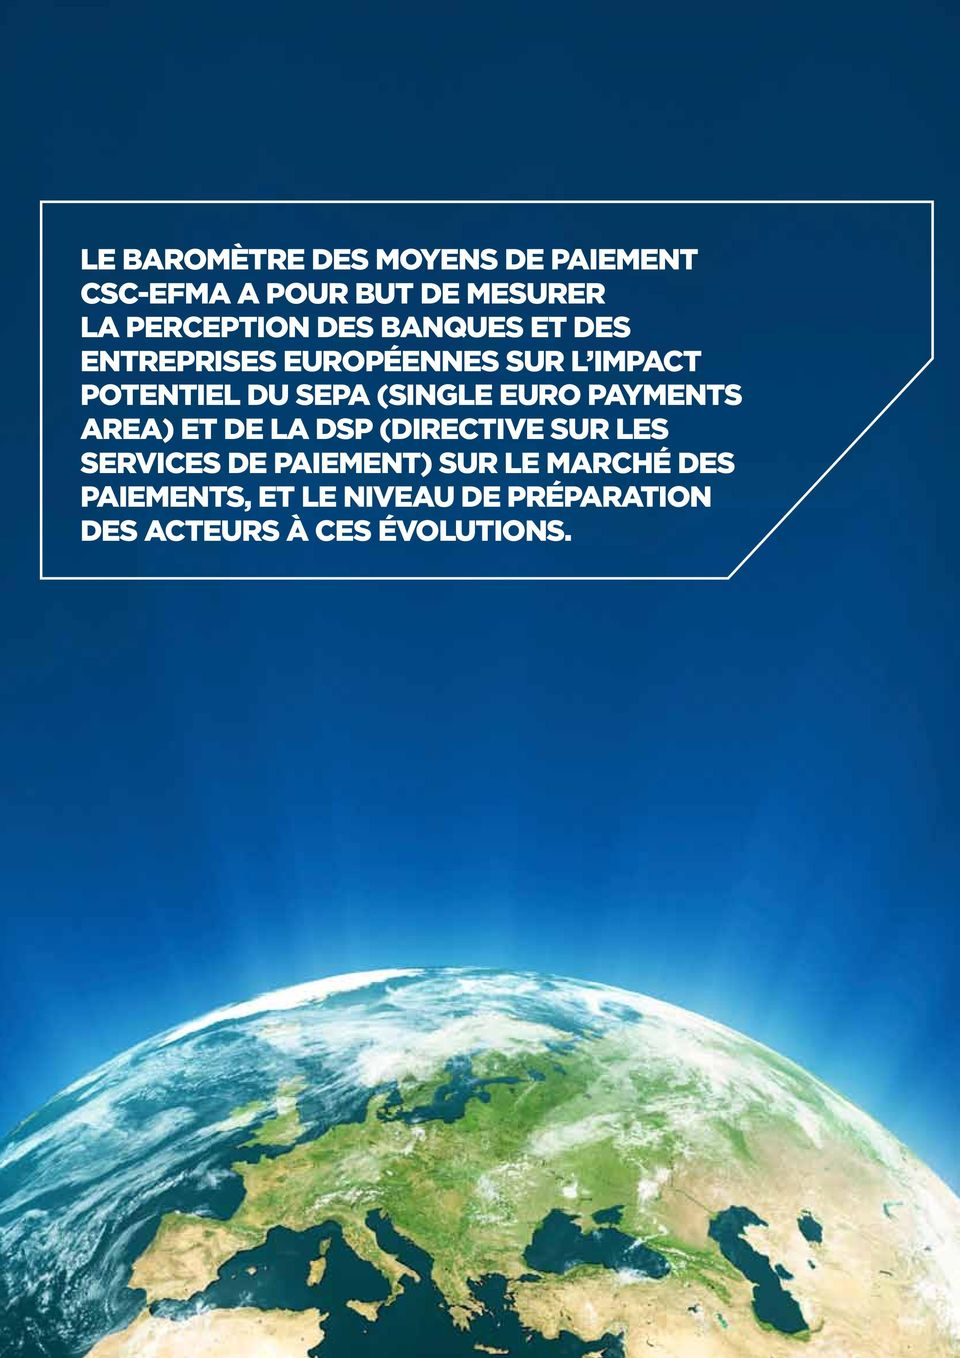 SEPA (Single Euro Payments Area) et de la DSP (Directive sur les Services de